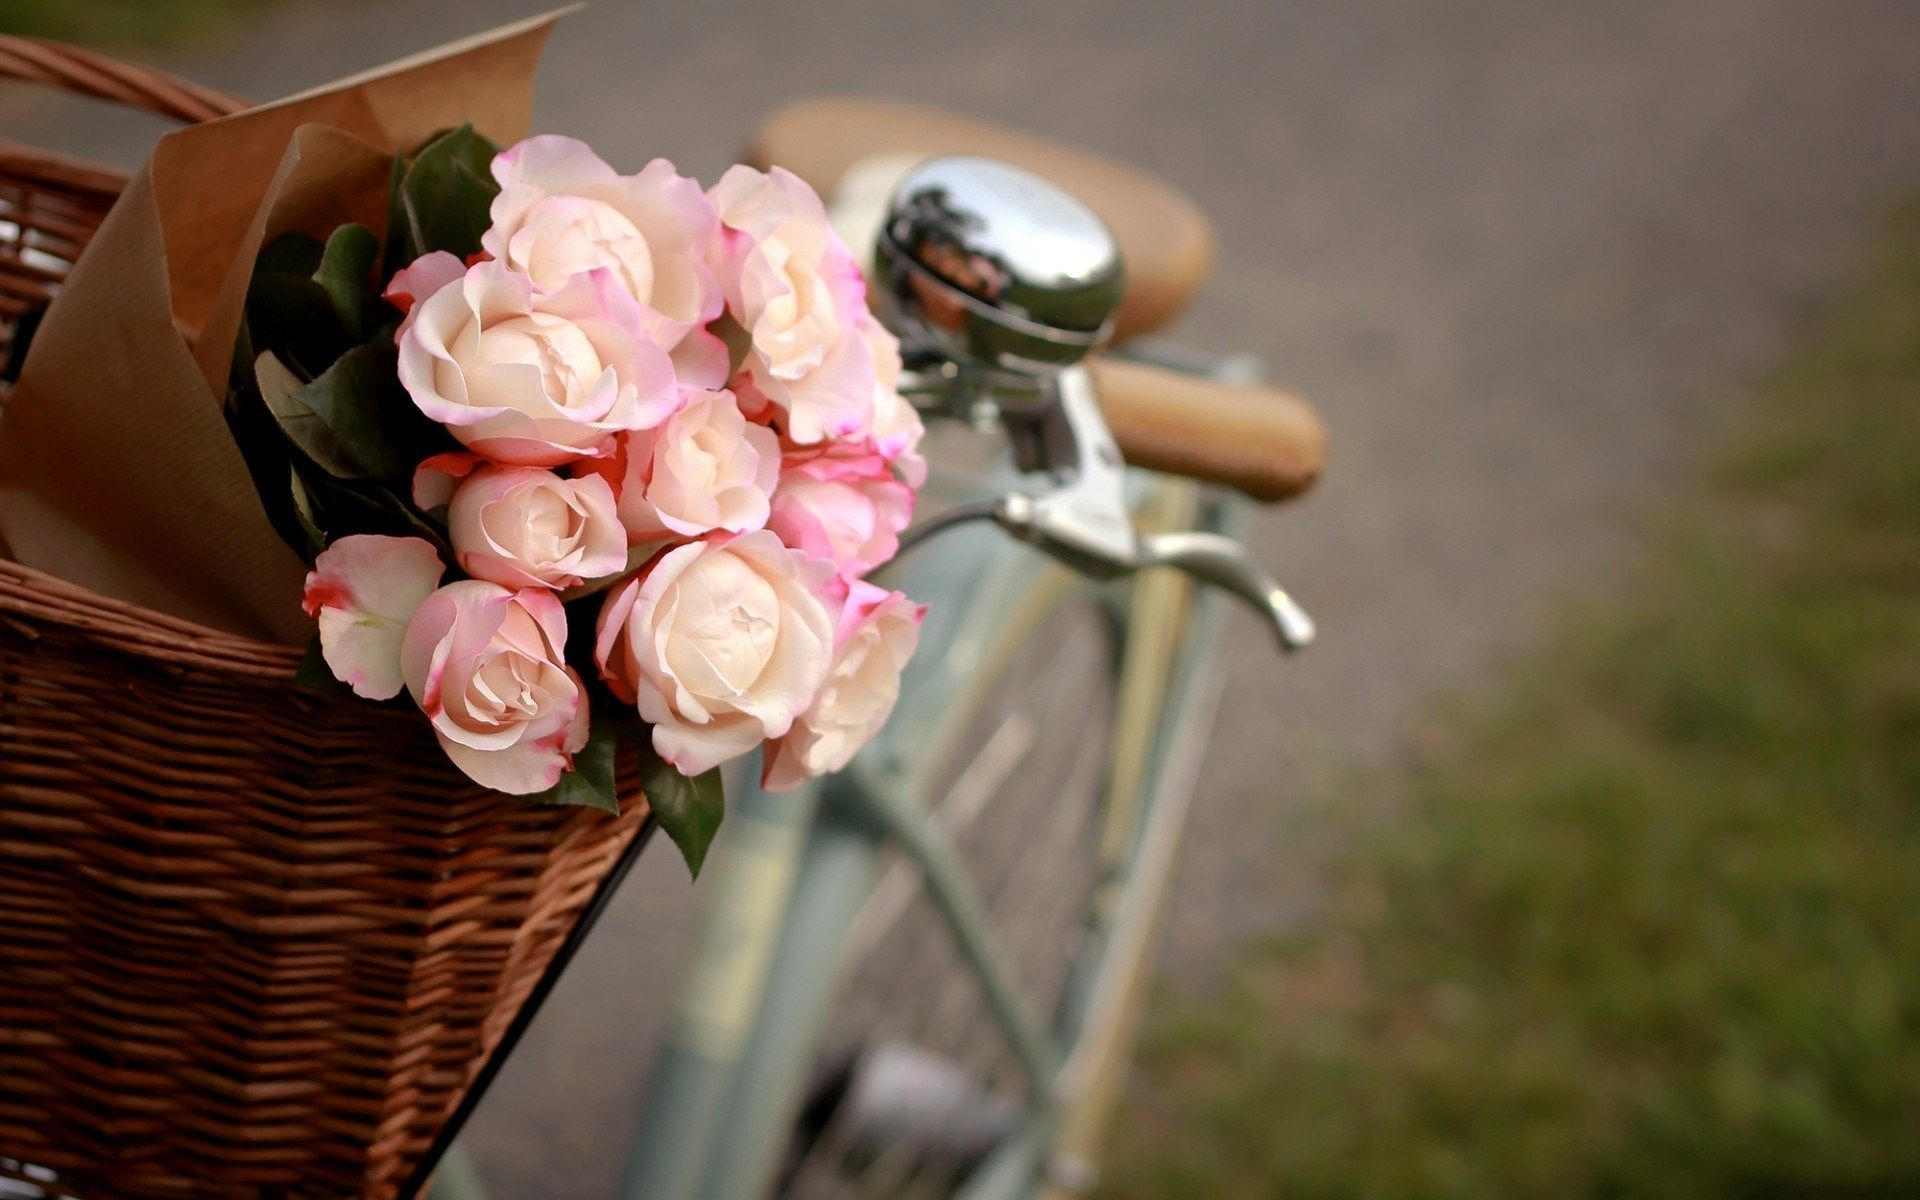 May All Your Wishes Come True Vintage Flowers Wallpaper Bike With Flowers Flower Wallpaper Hd